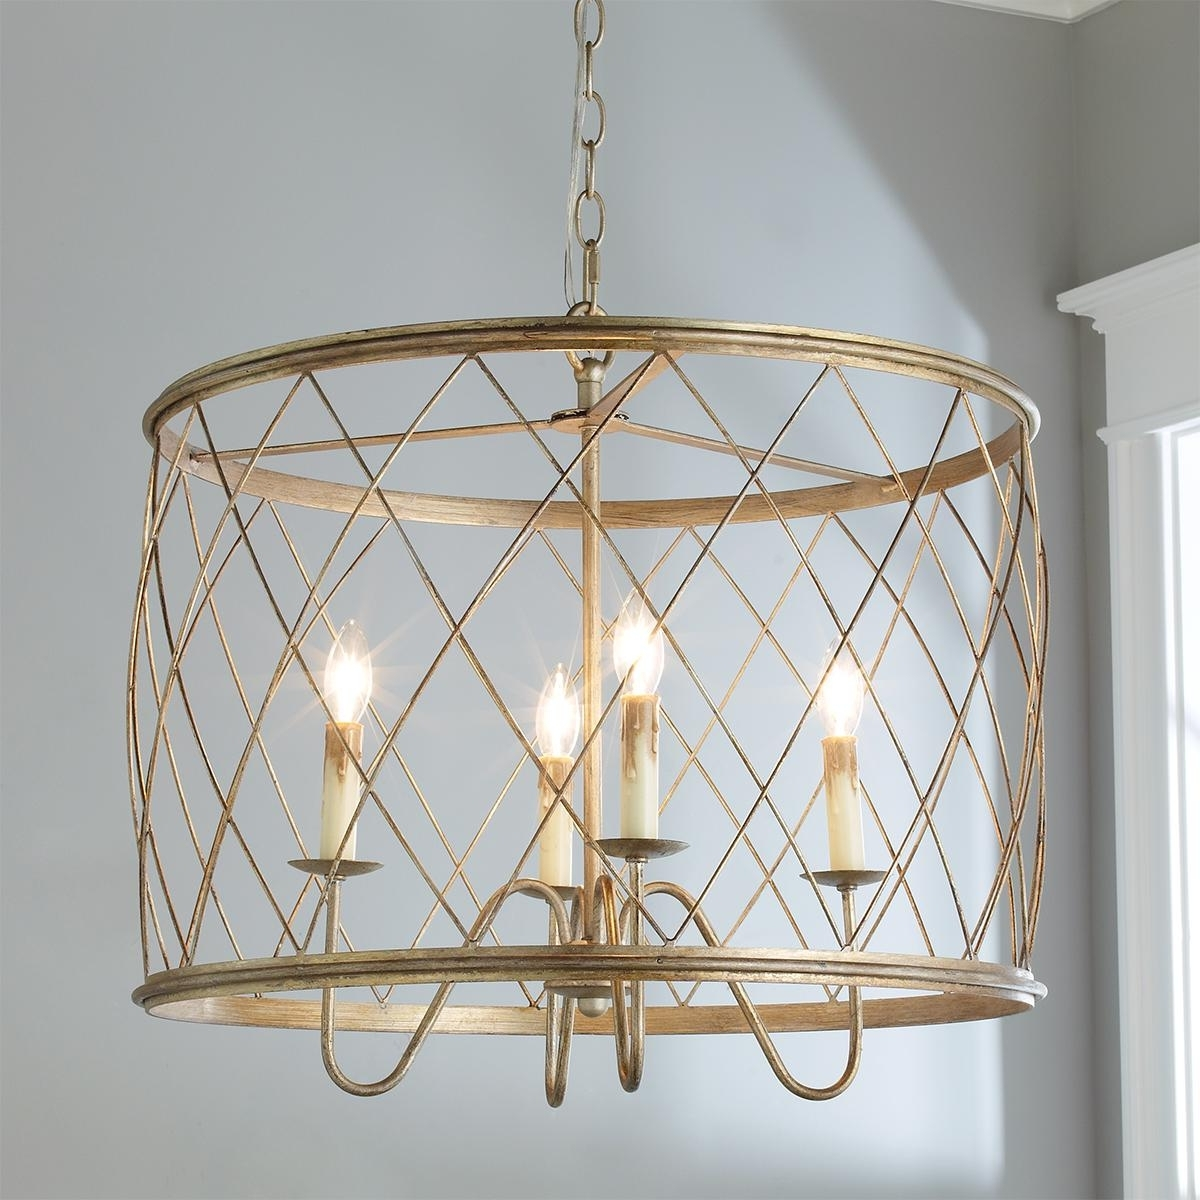 Well Liked Interior: Cage Chandelier For Unique Interior Lighting Design Ideas Within Caged Chandelier (View 19 of 20)